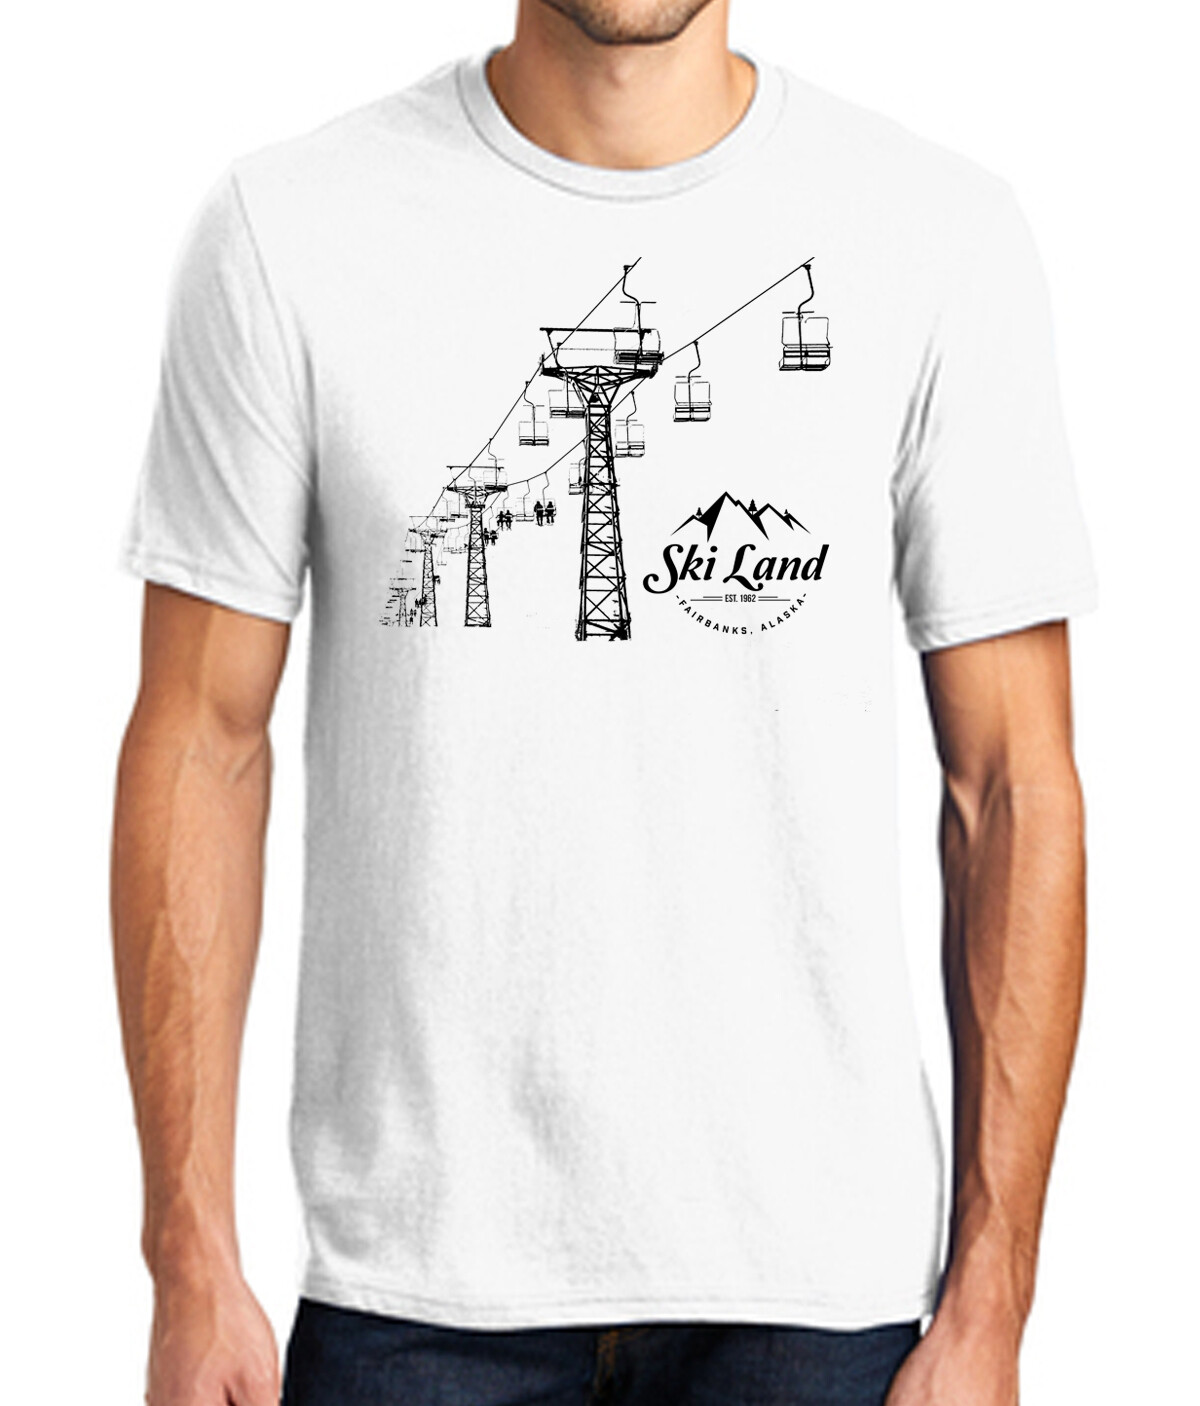 Ski Land Chairlift Silhouette T-Shirt